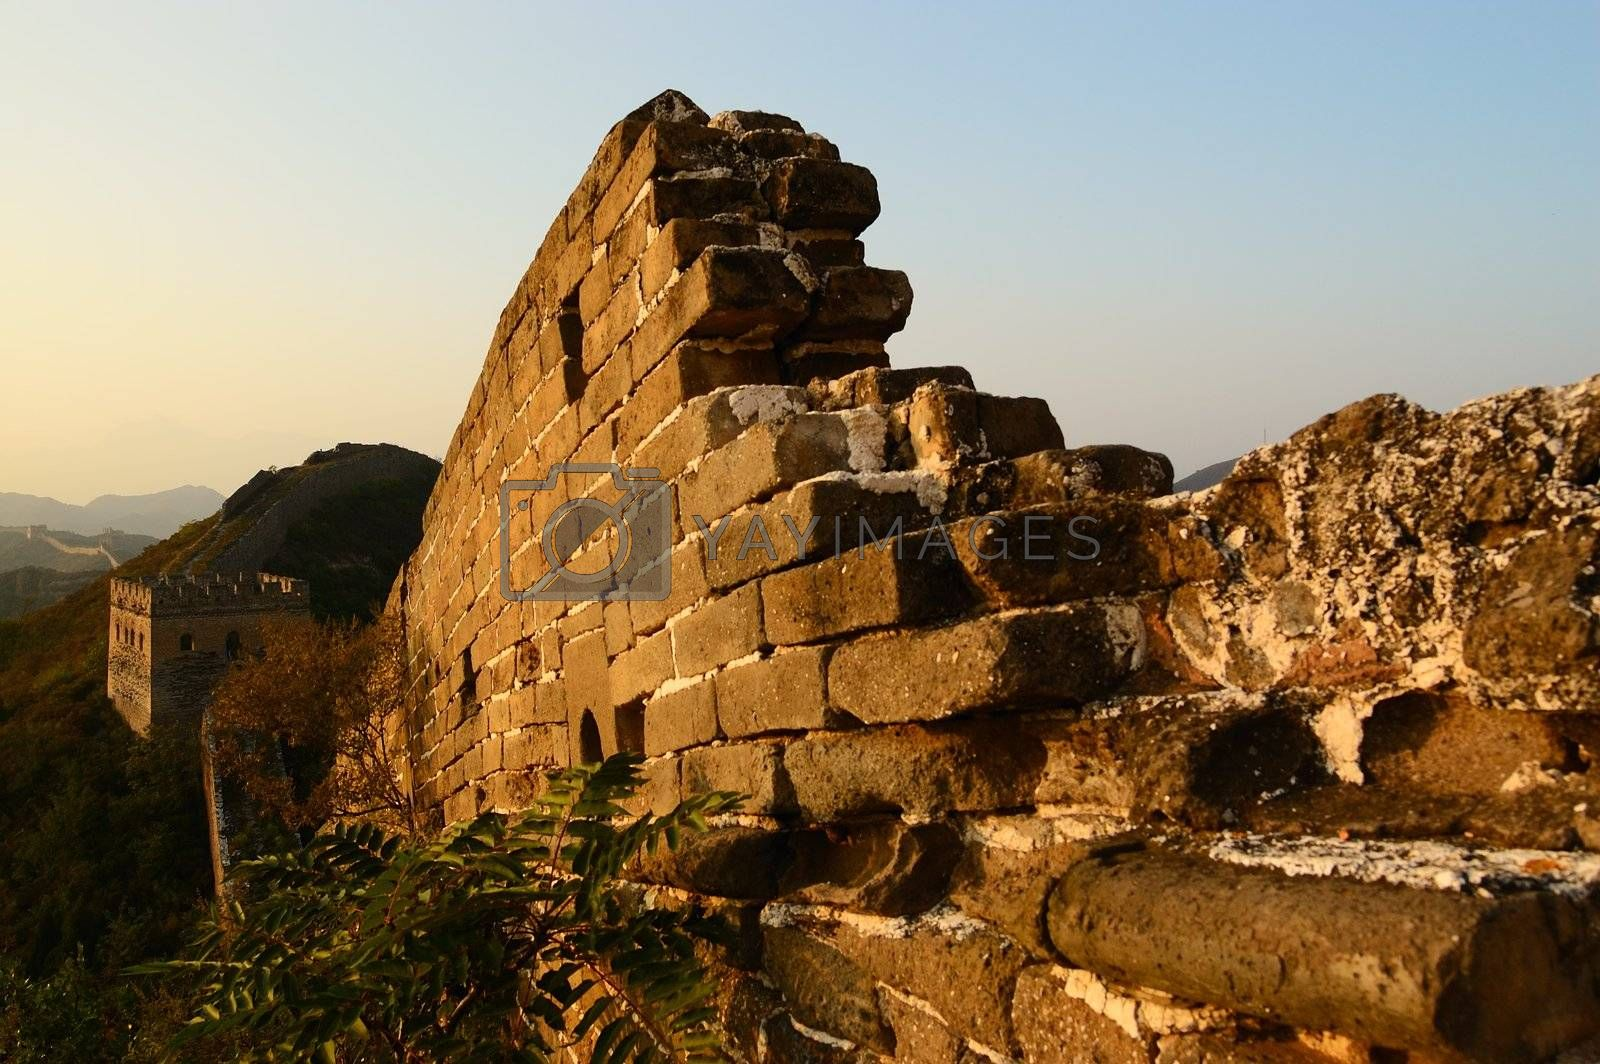 The Great Wall of China in Jinshanling, Hebei Province, China